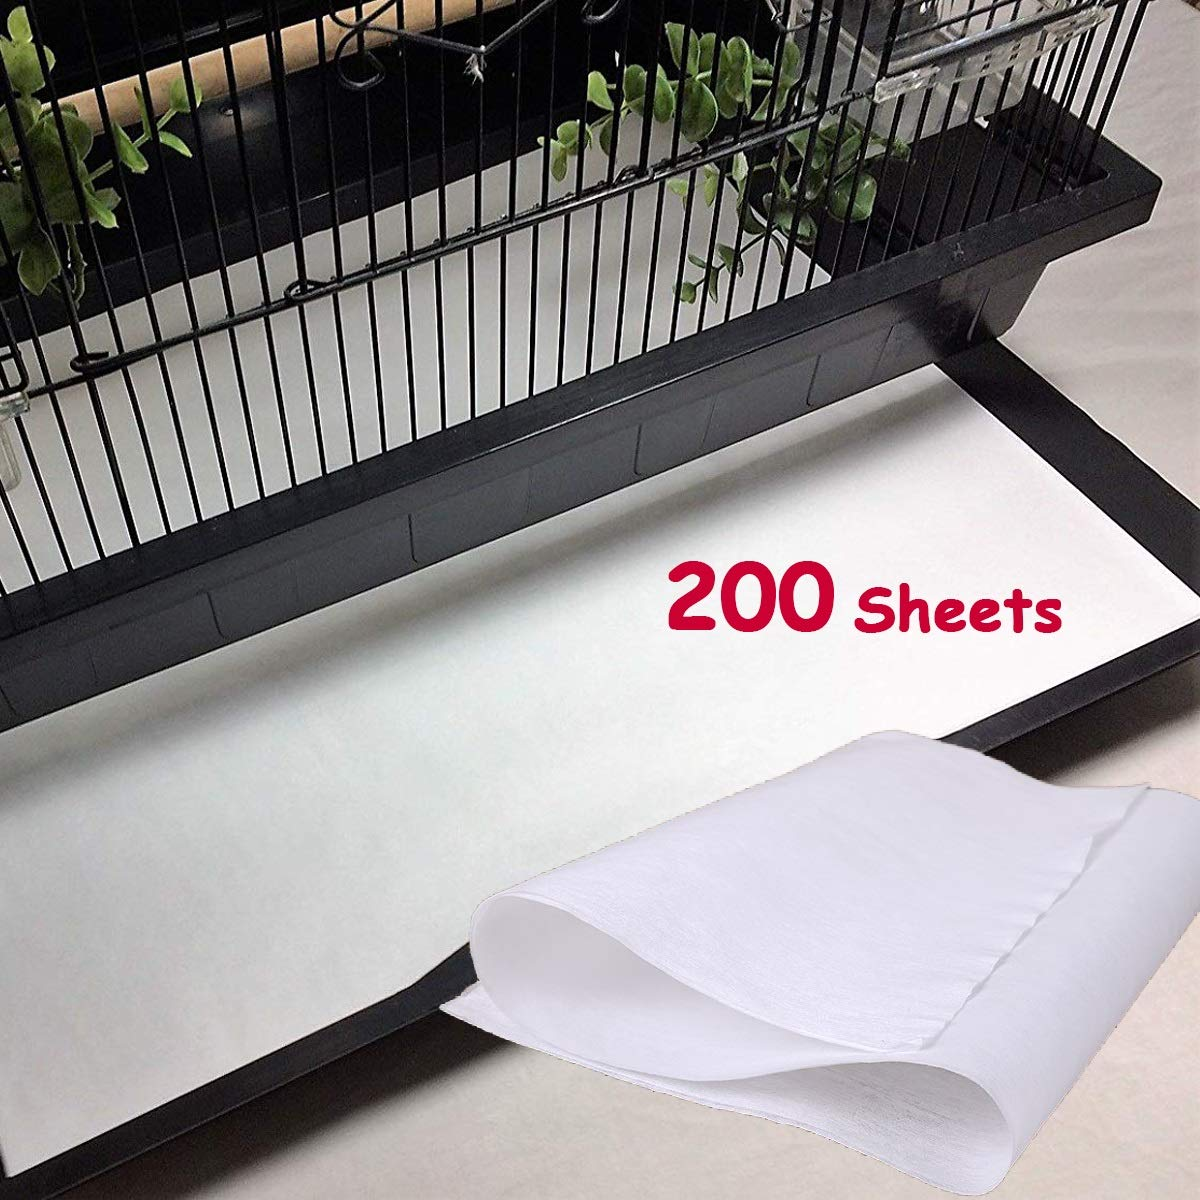 Bonaweite Disposable Non-Woven Bird Cage Liners Papers, Parrot Pet Cages Cushion Pad Mat Accessories, Square-200 Sheets by Bonaweite